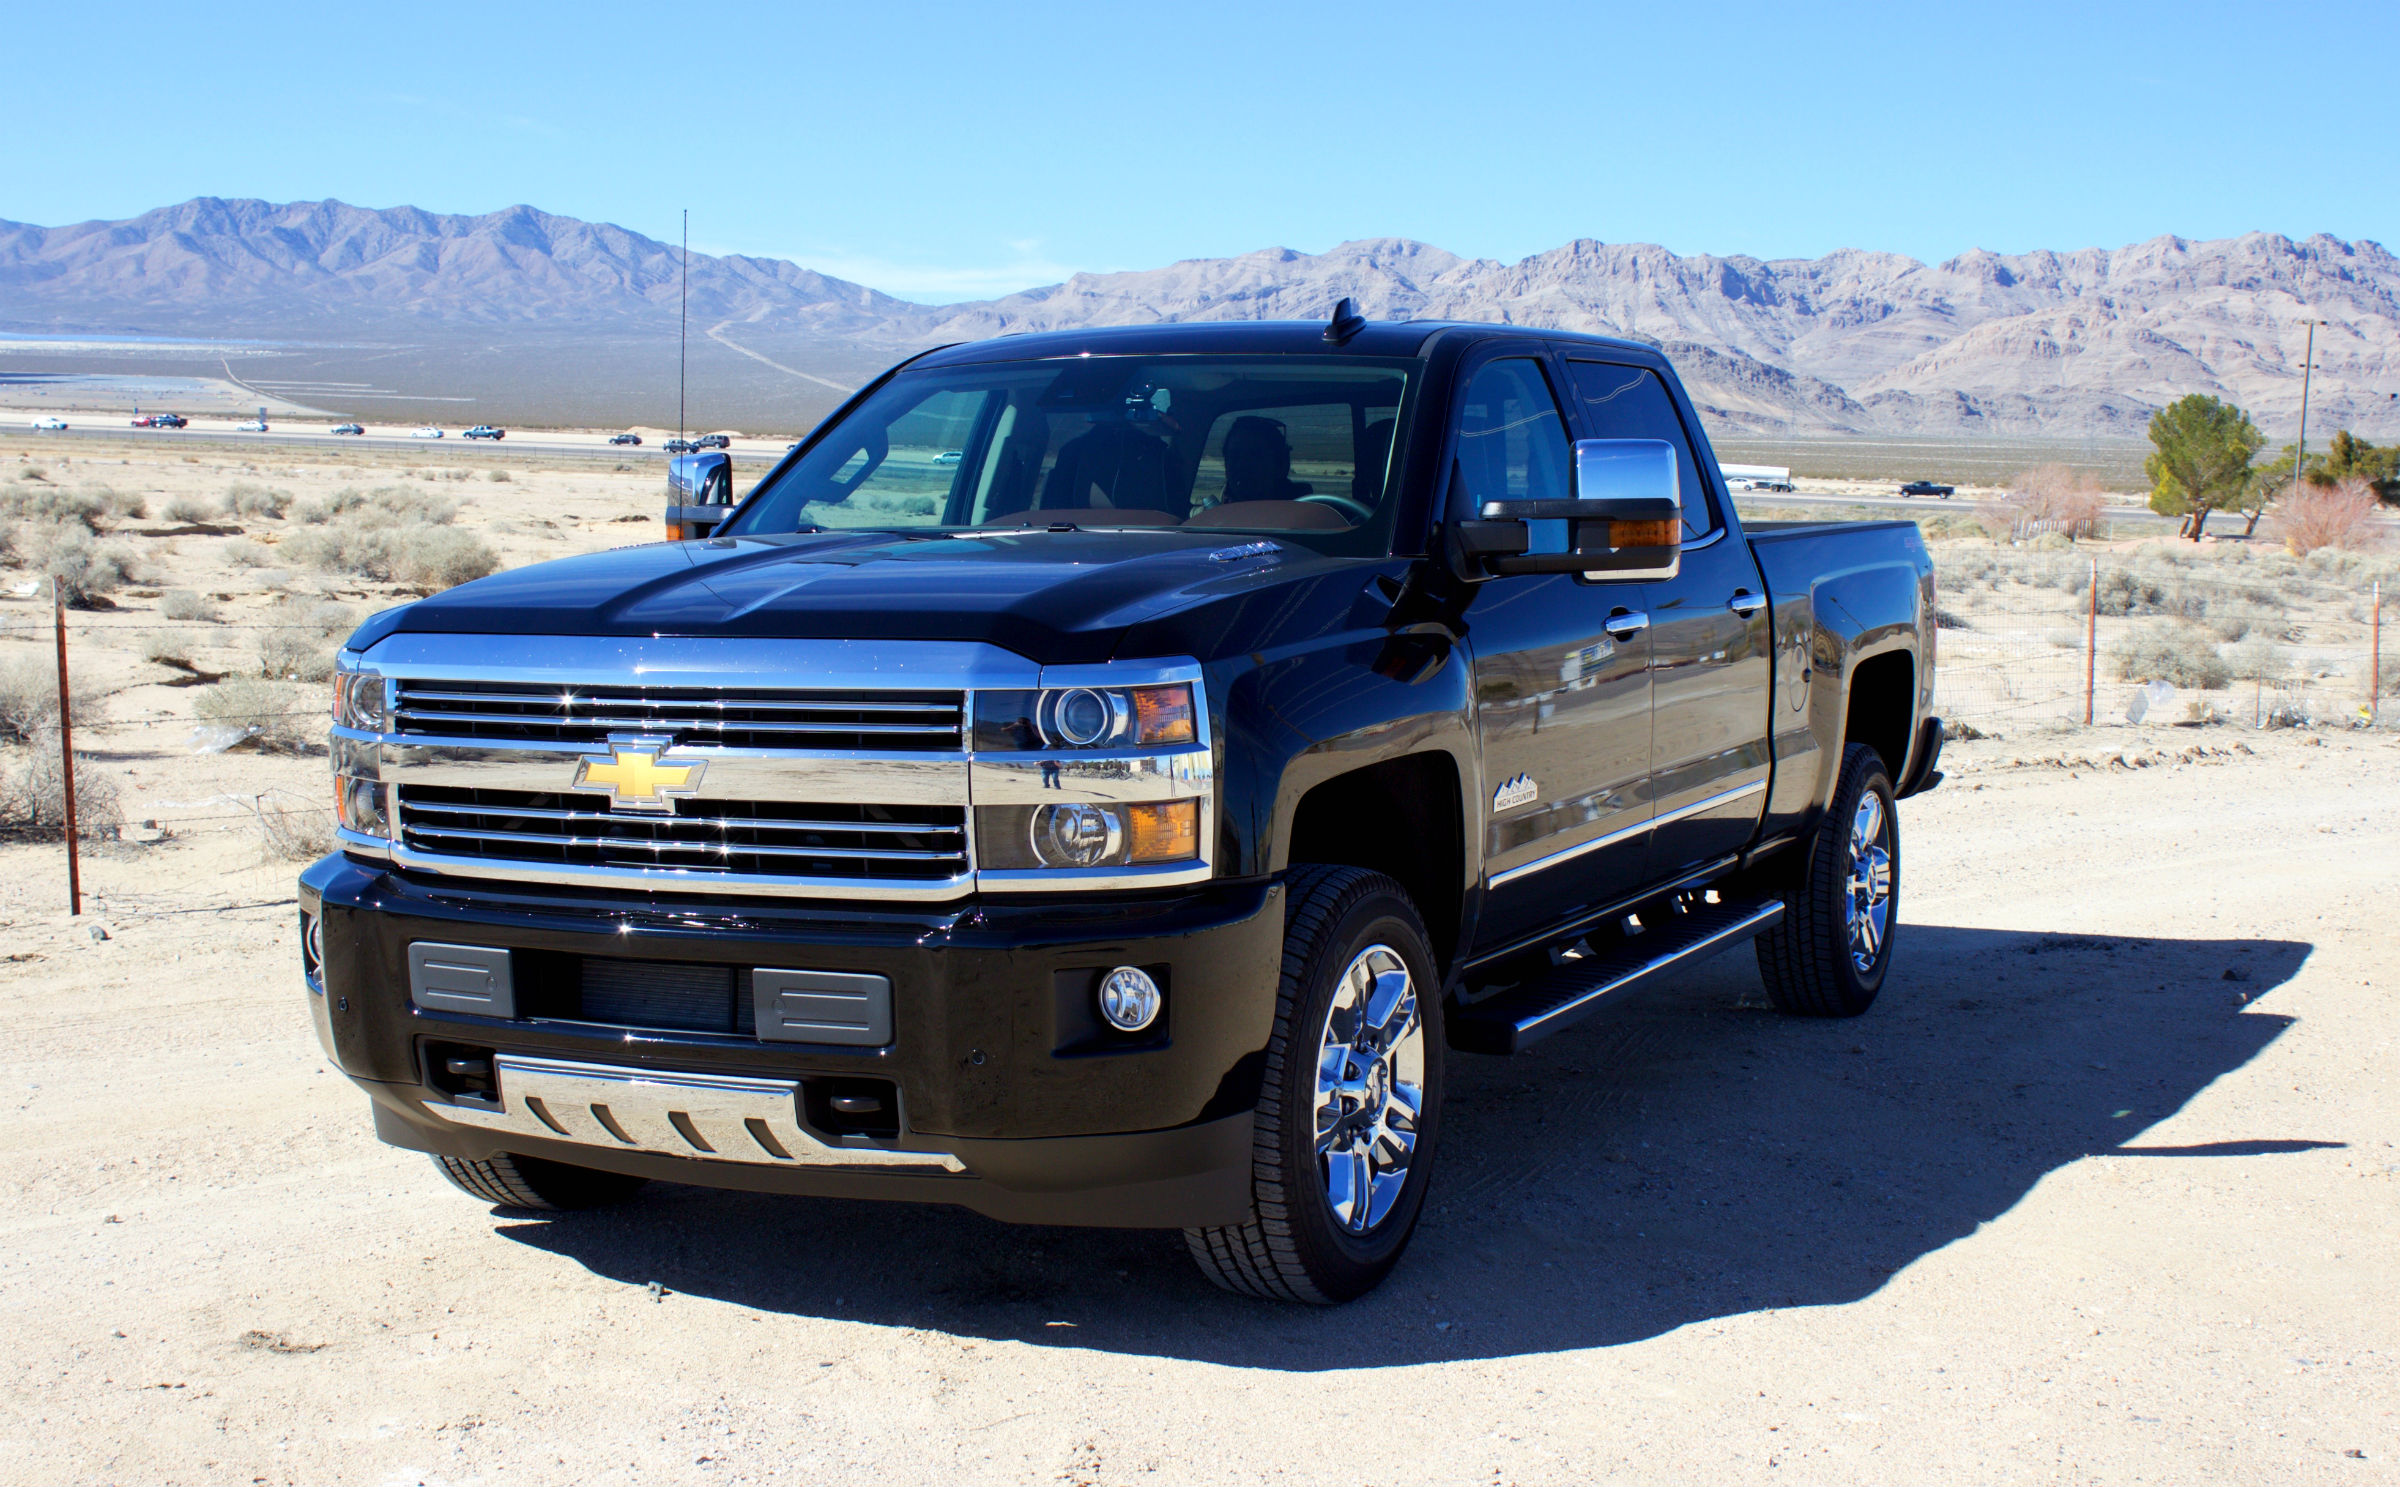 2016 Chevrolet Silverado 2500hd High Country Review